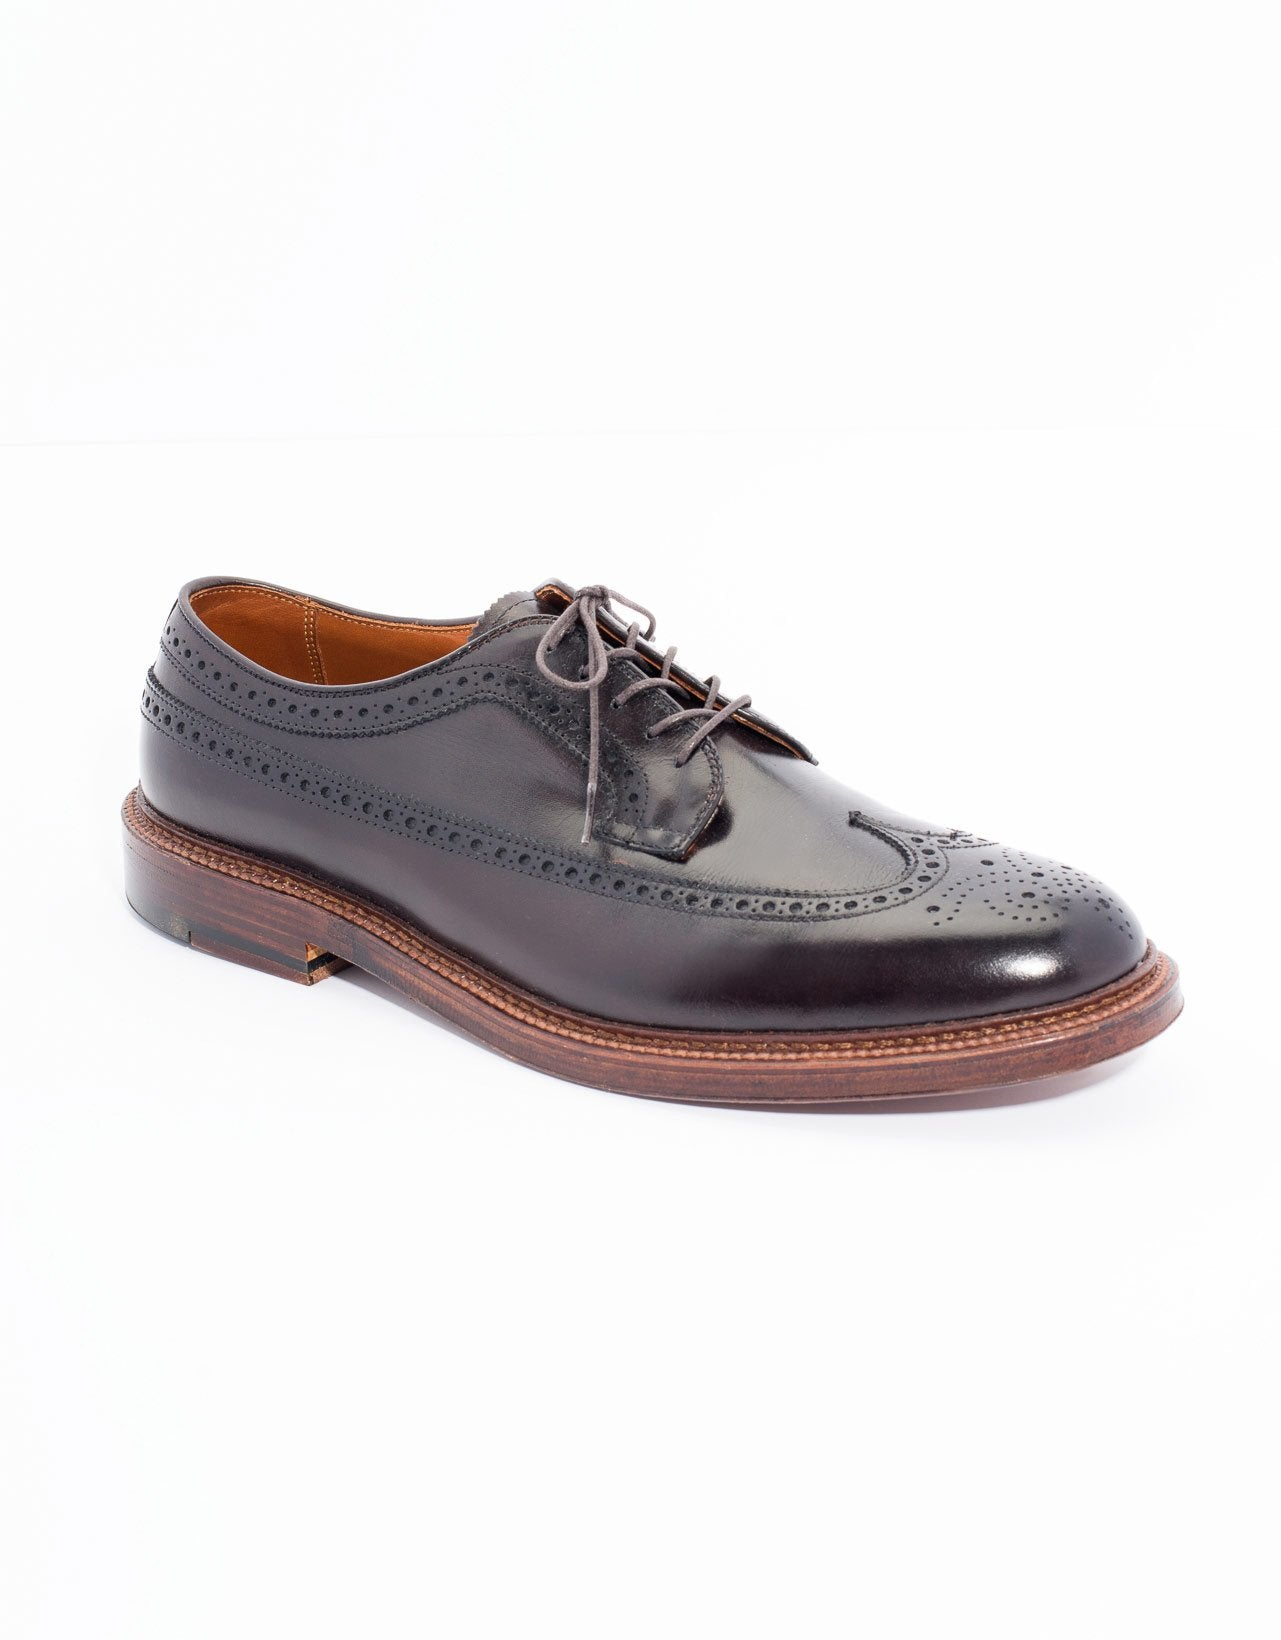 ALDEN LONG WING BLUTCHER CALFSKIN- BROWN